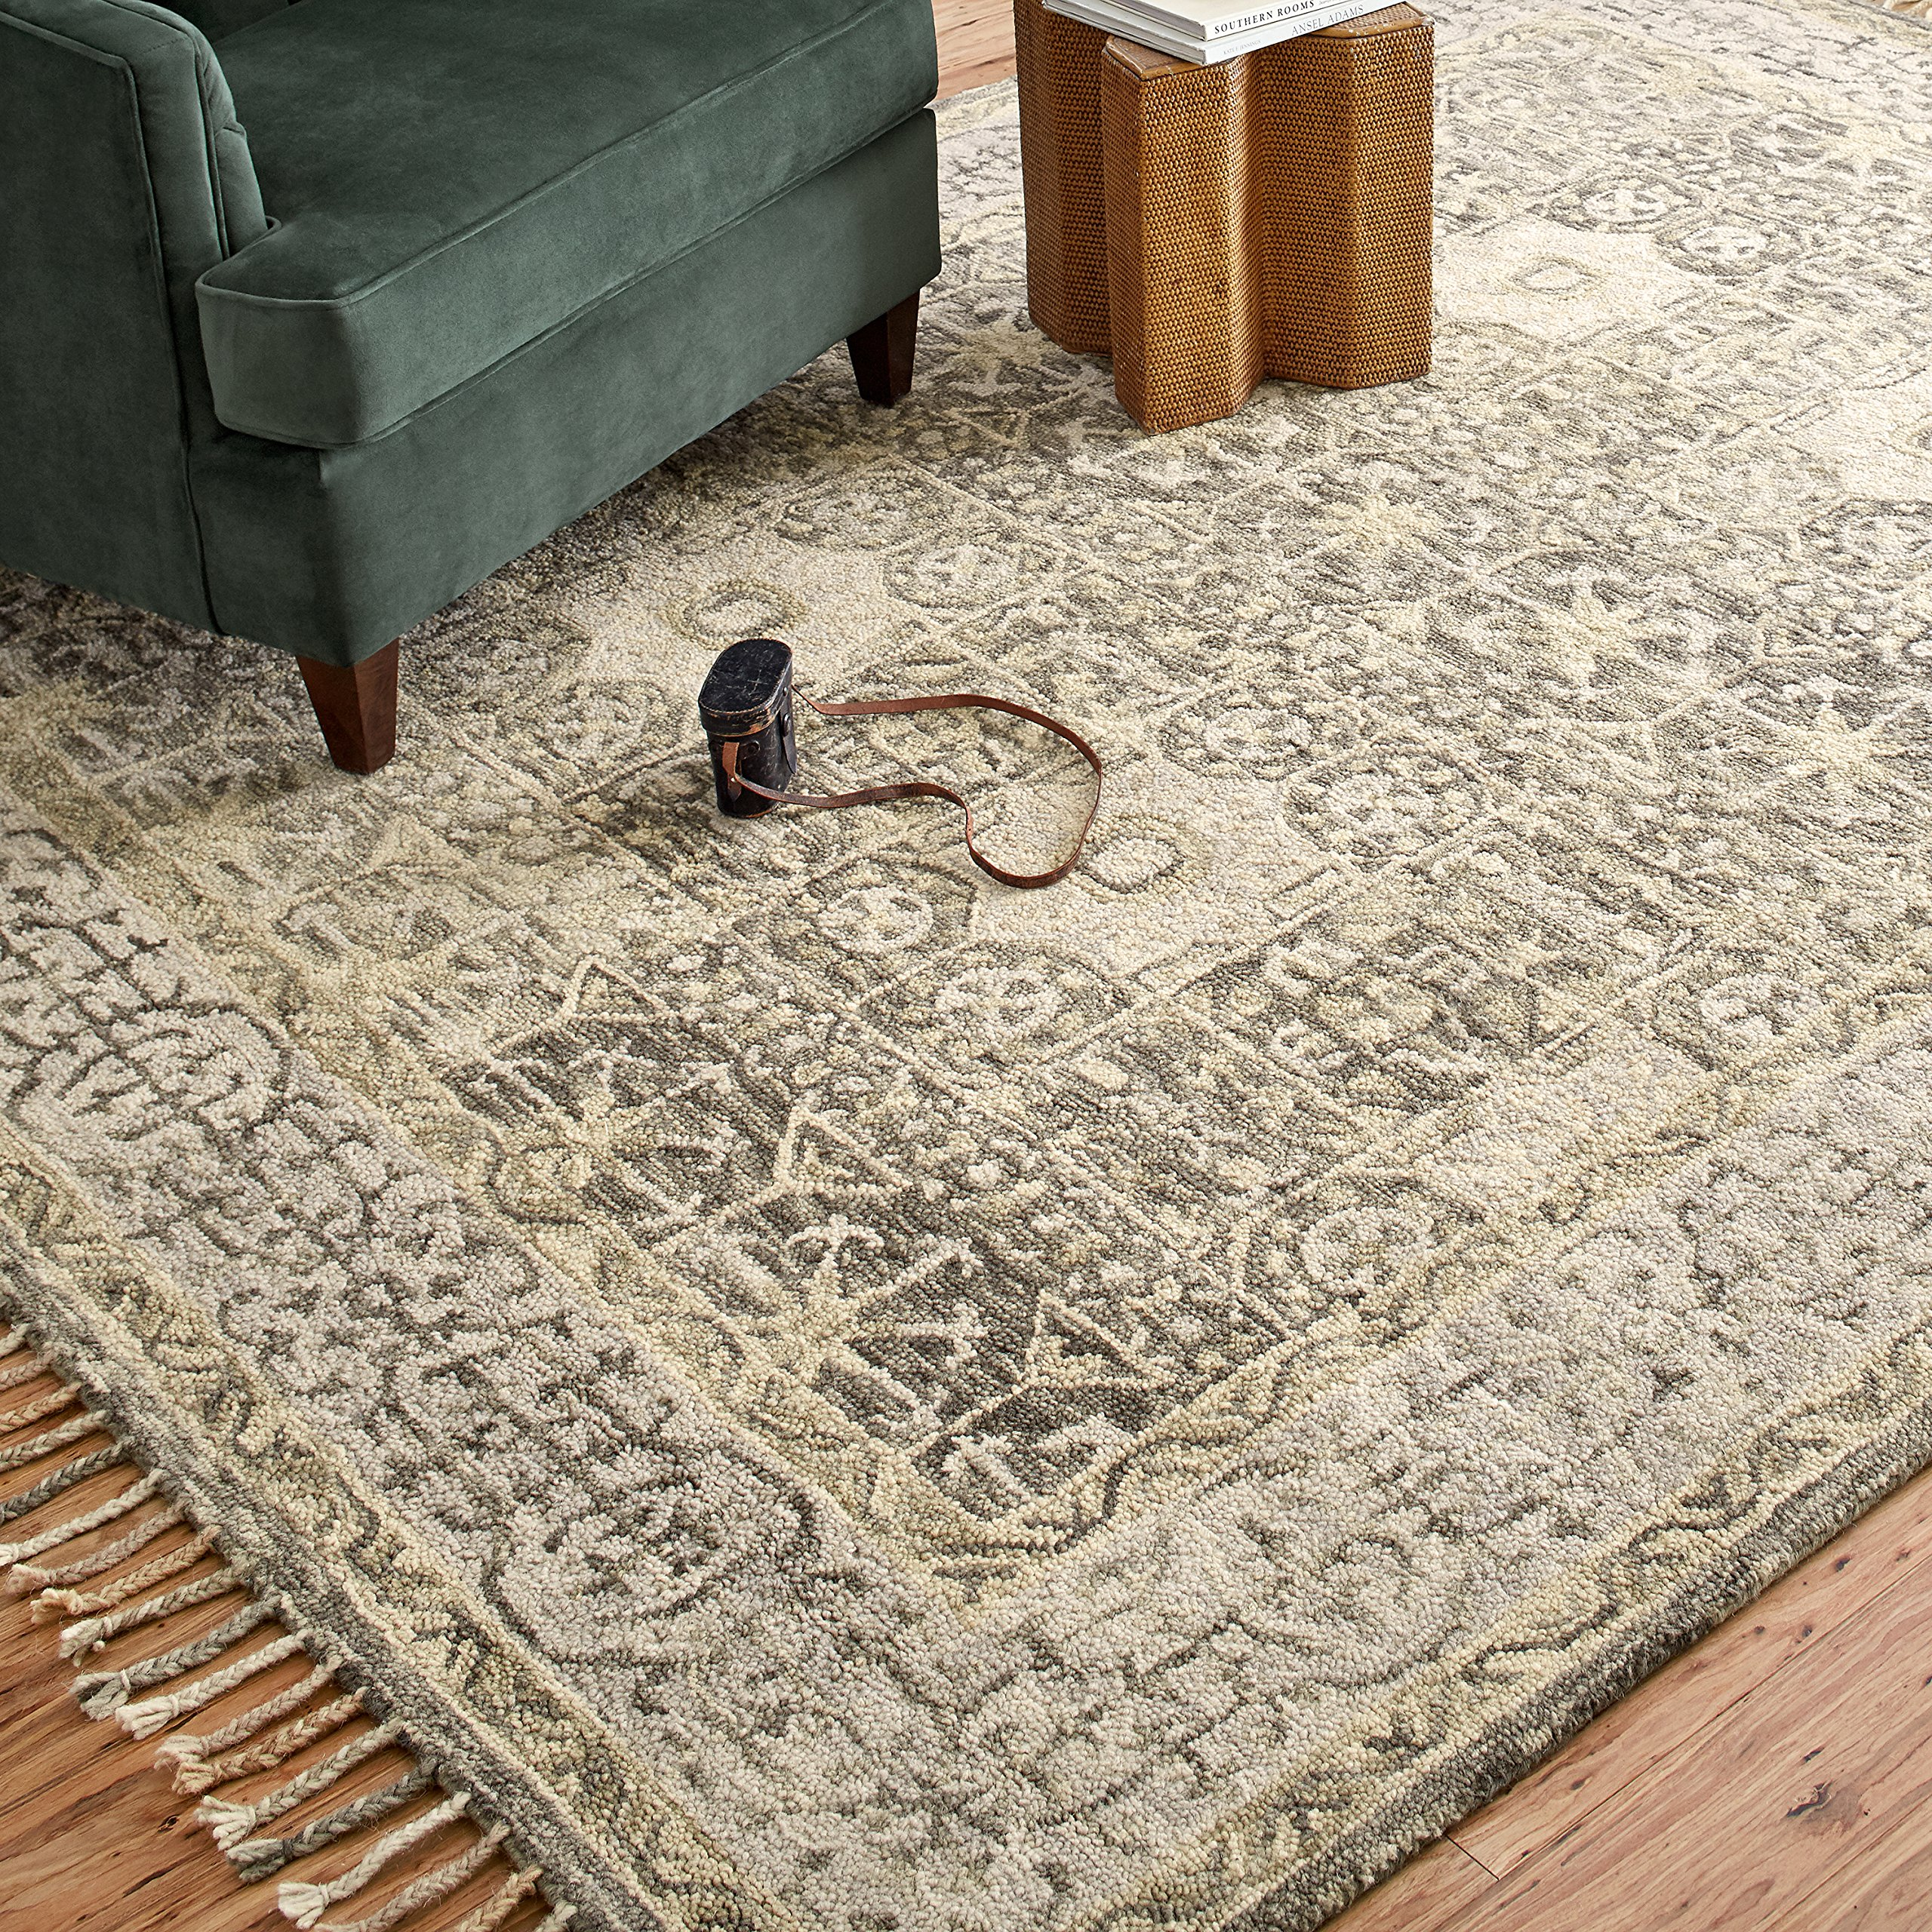 Stone & Beam Kelsea Transitional Wool Area Rug, 8' x 10', Beige and Grey by Stone & Beam (Image #4)